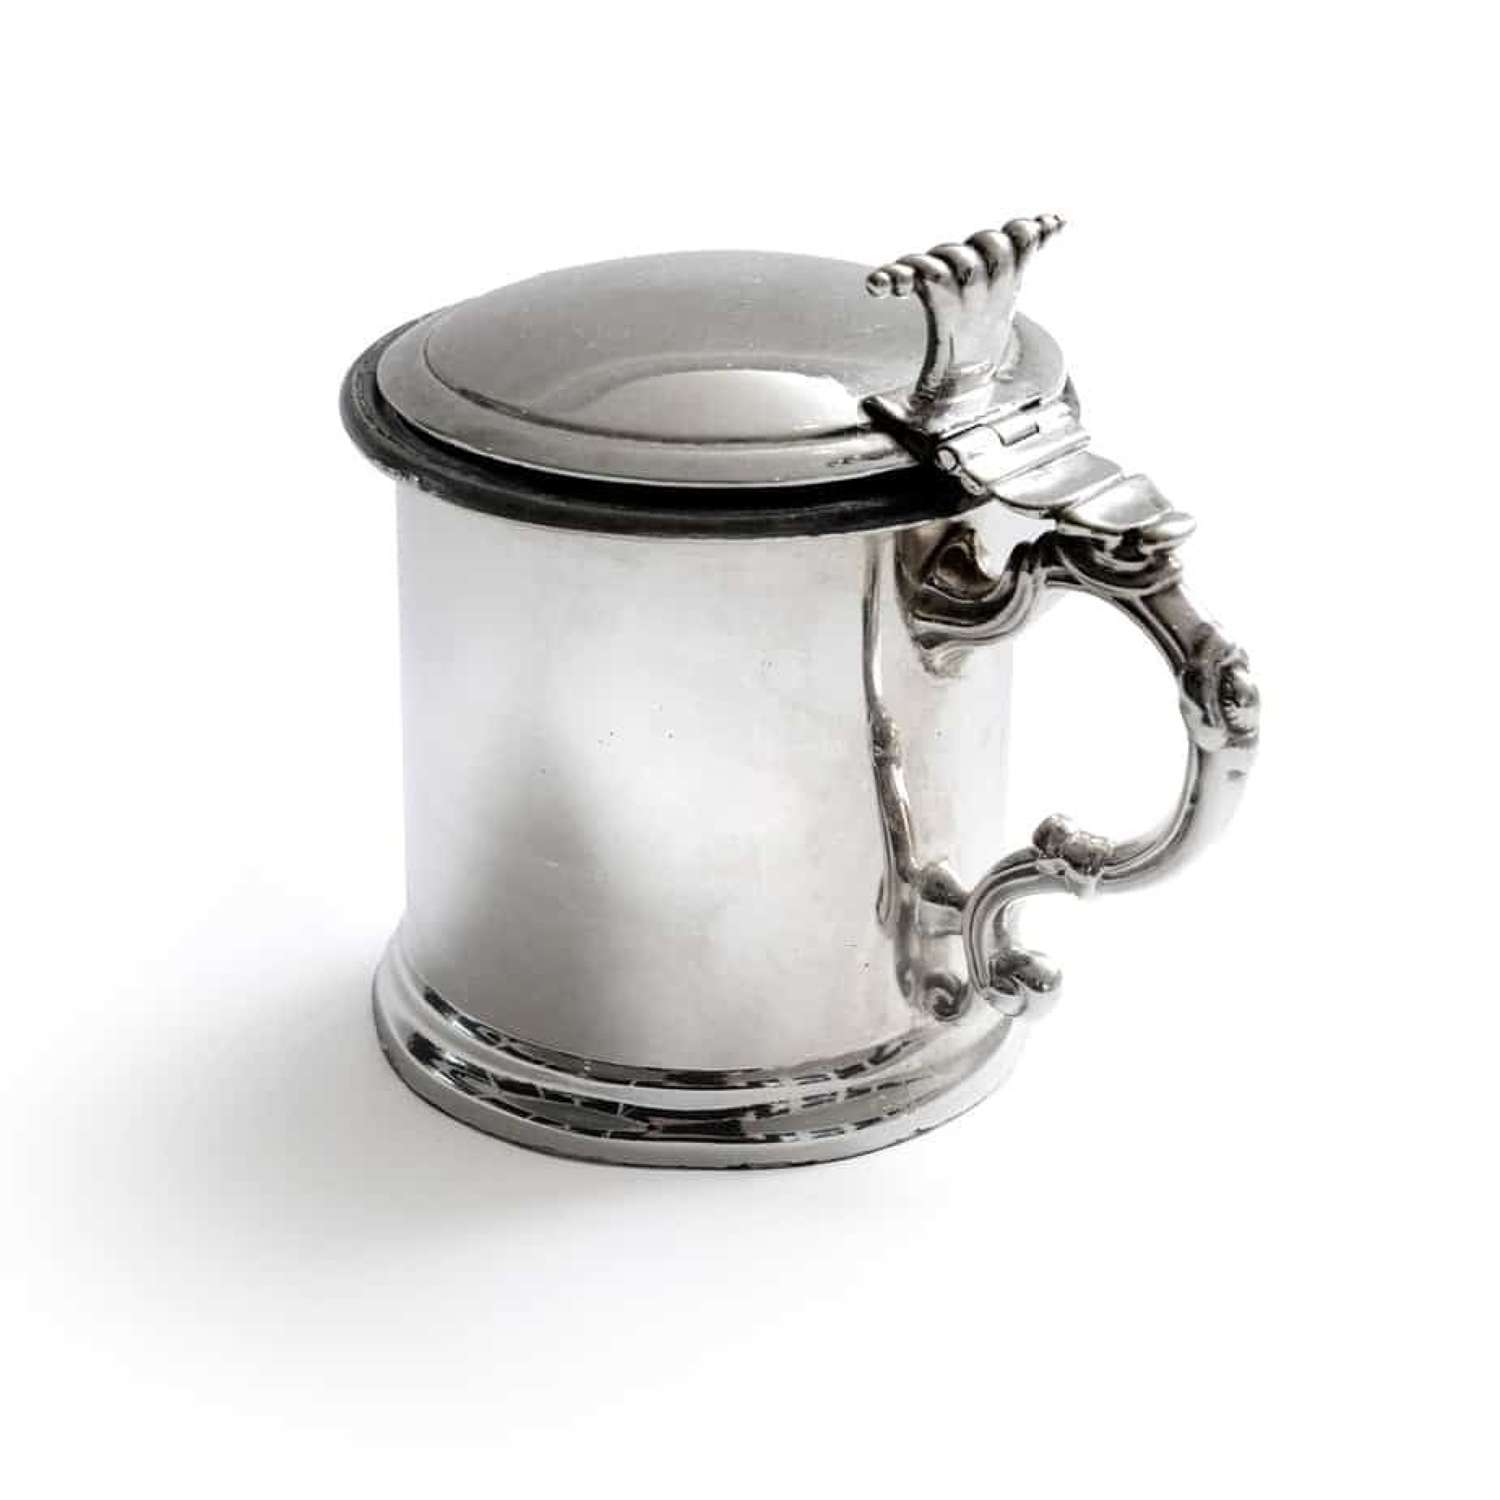 An electroplated mustard pot of cylindrical design